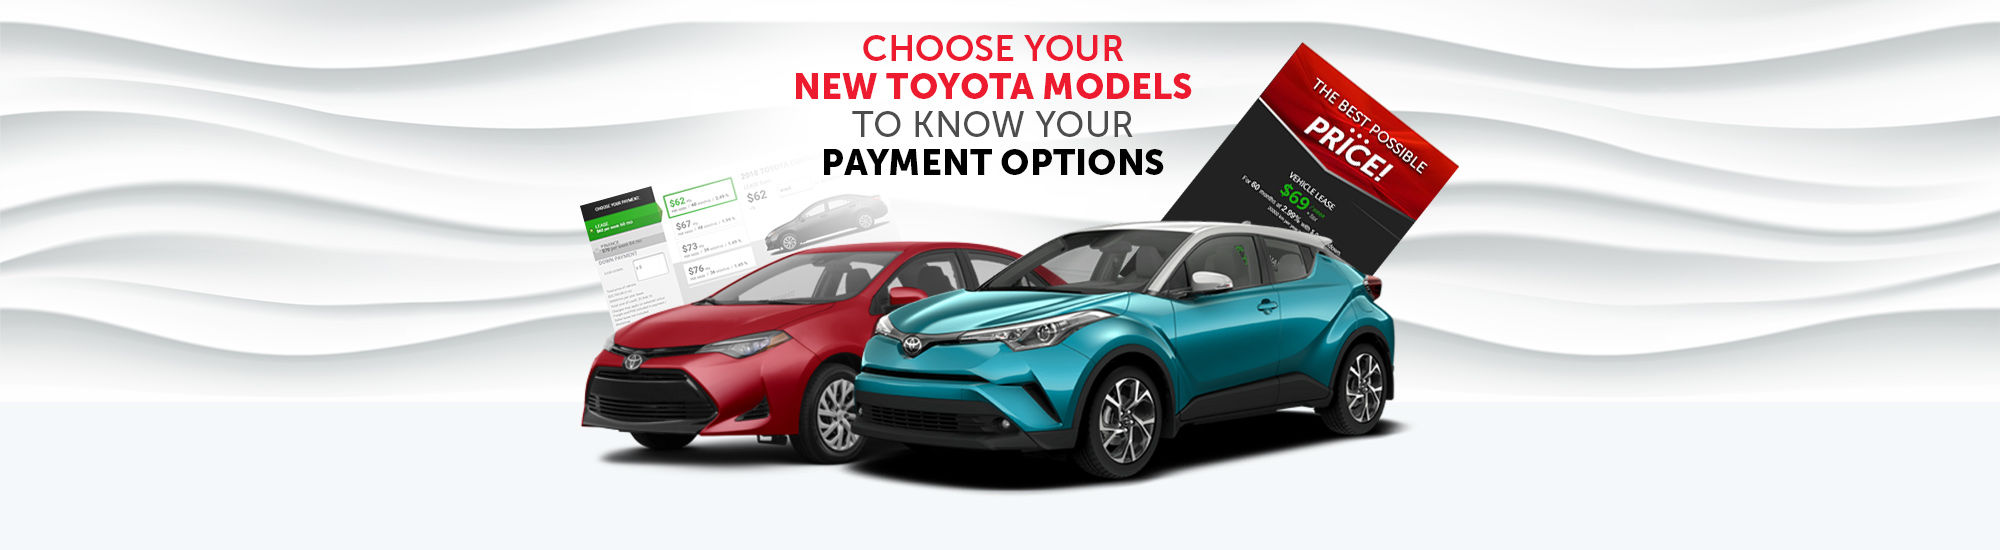 Choose your new Toyota models to know your payment options